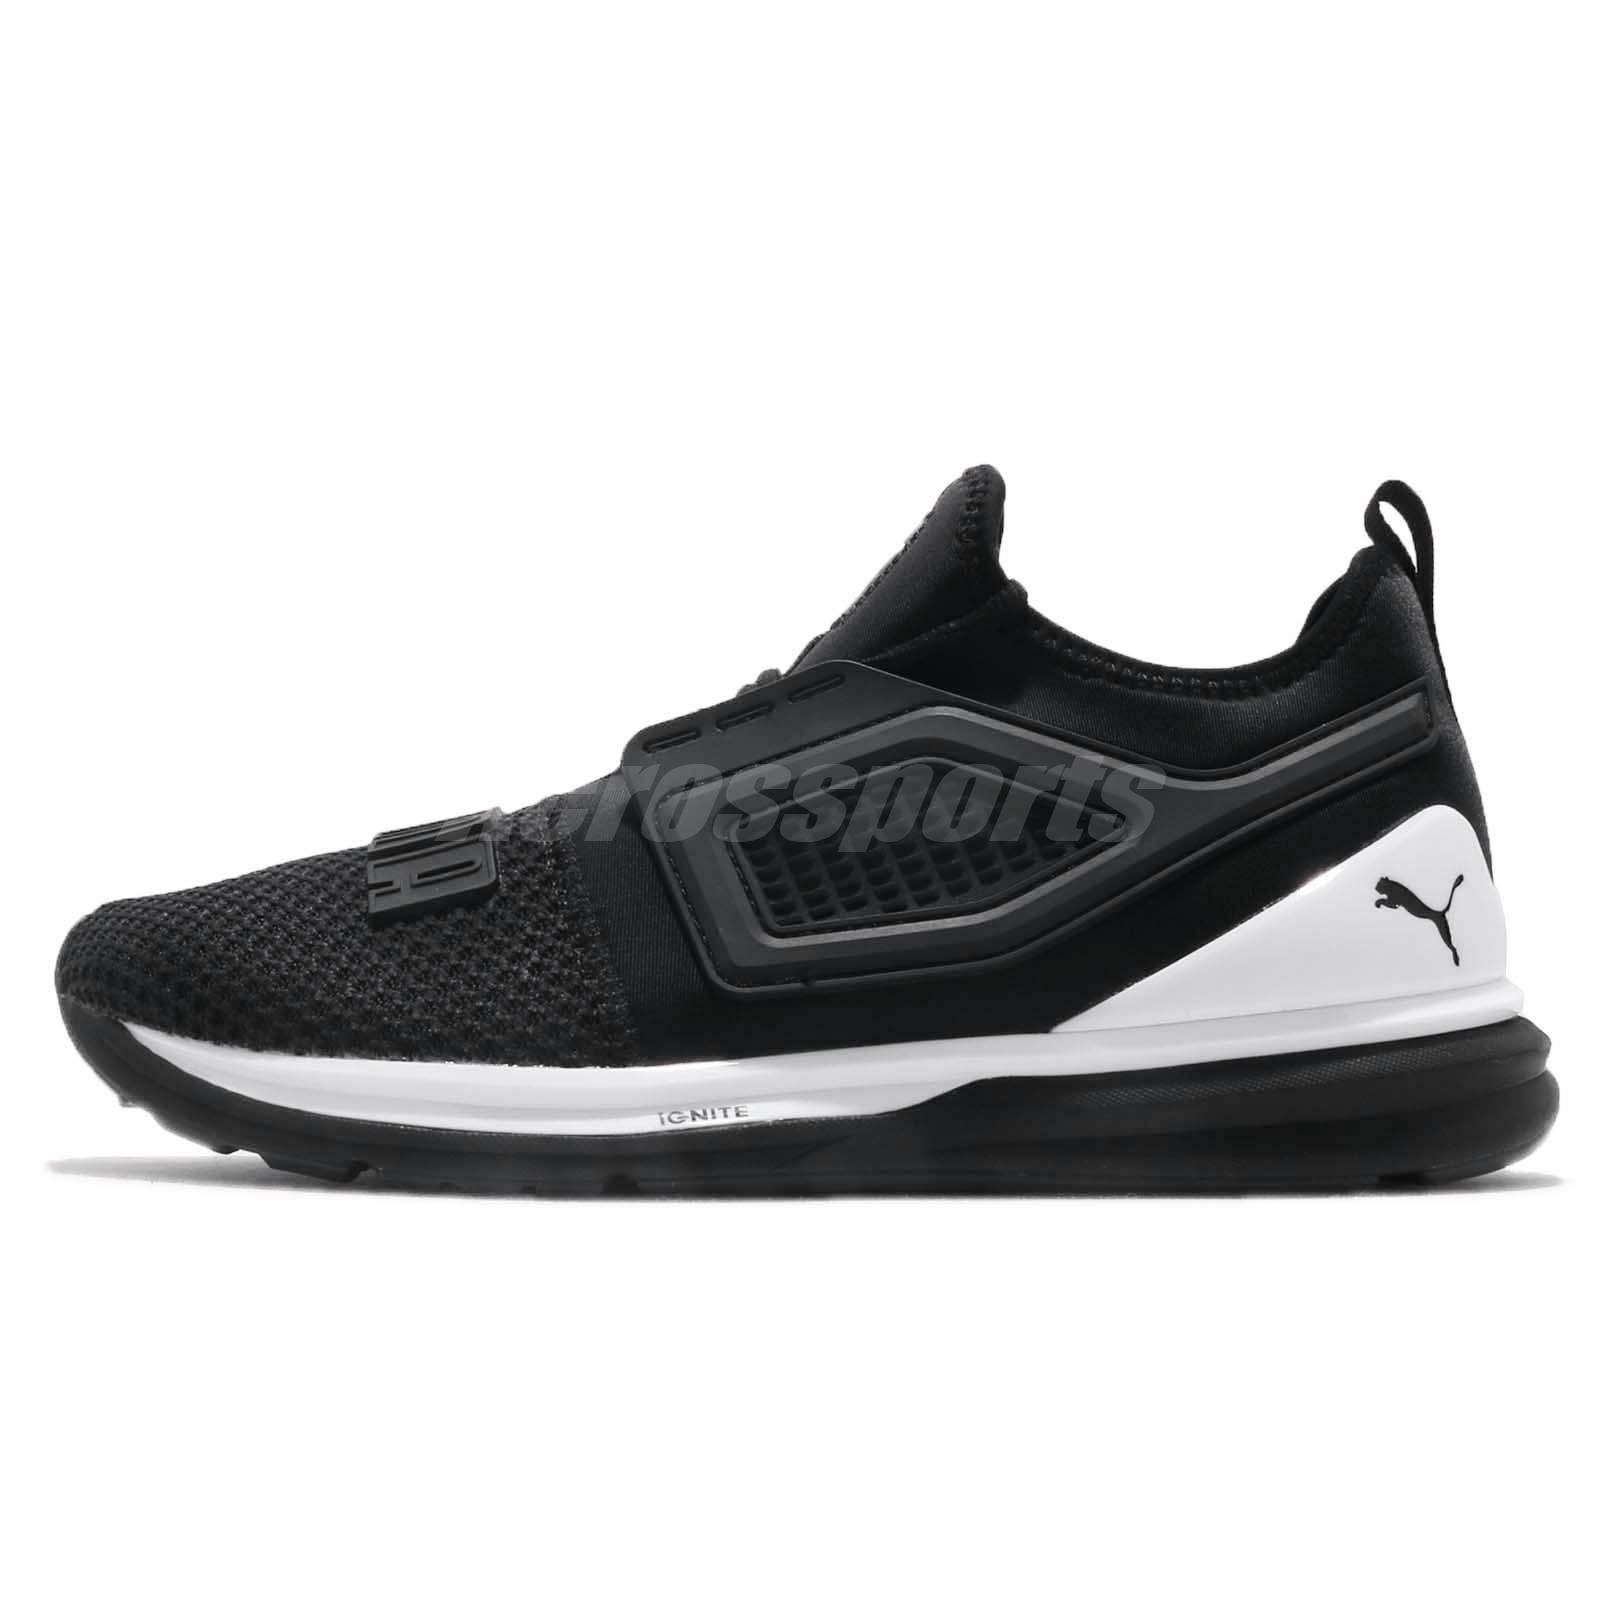 7e17b9eb4d2aef Puma Ignite Limitless 2 Black White Men Running Training Shoes Sneaker  191293-01